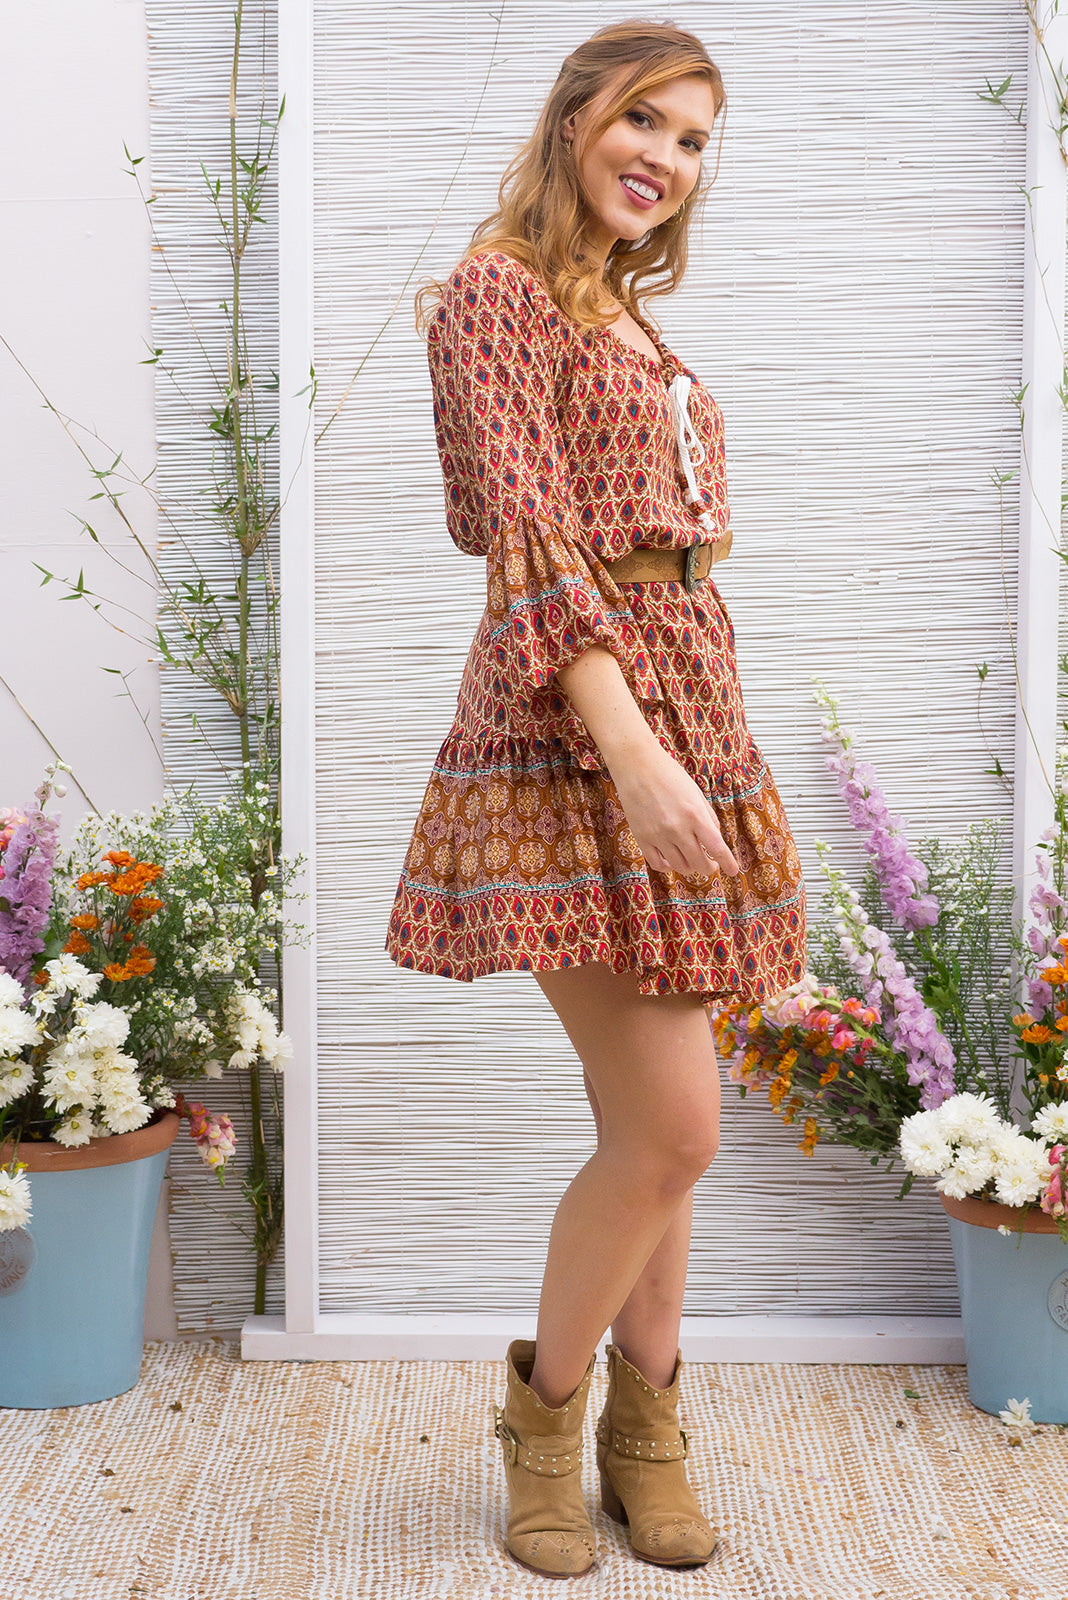 Moon Slice Dress in Rust Red Desert Print features a drop waist and 3/4 sleeves with a boho frill and a cord drawstring neck